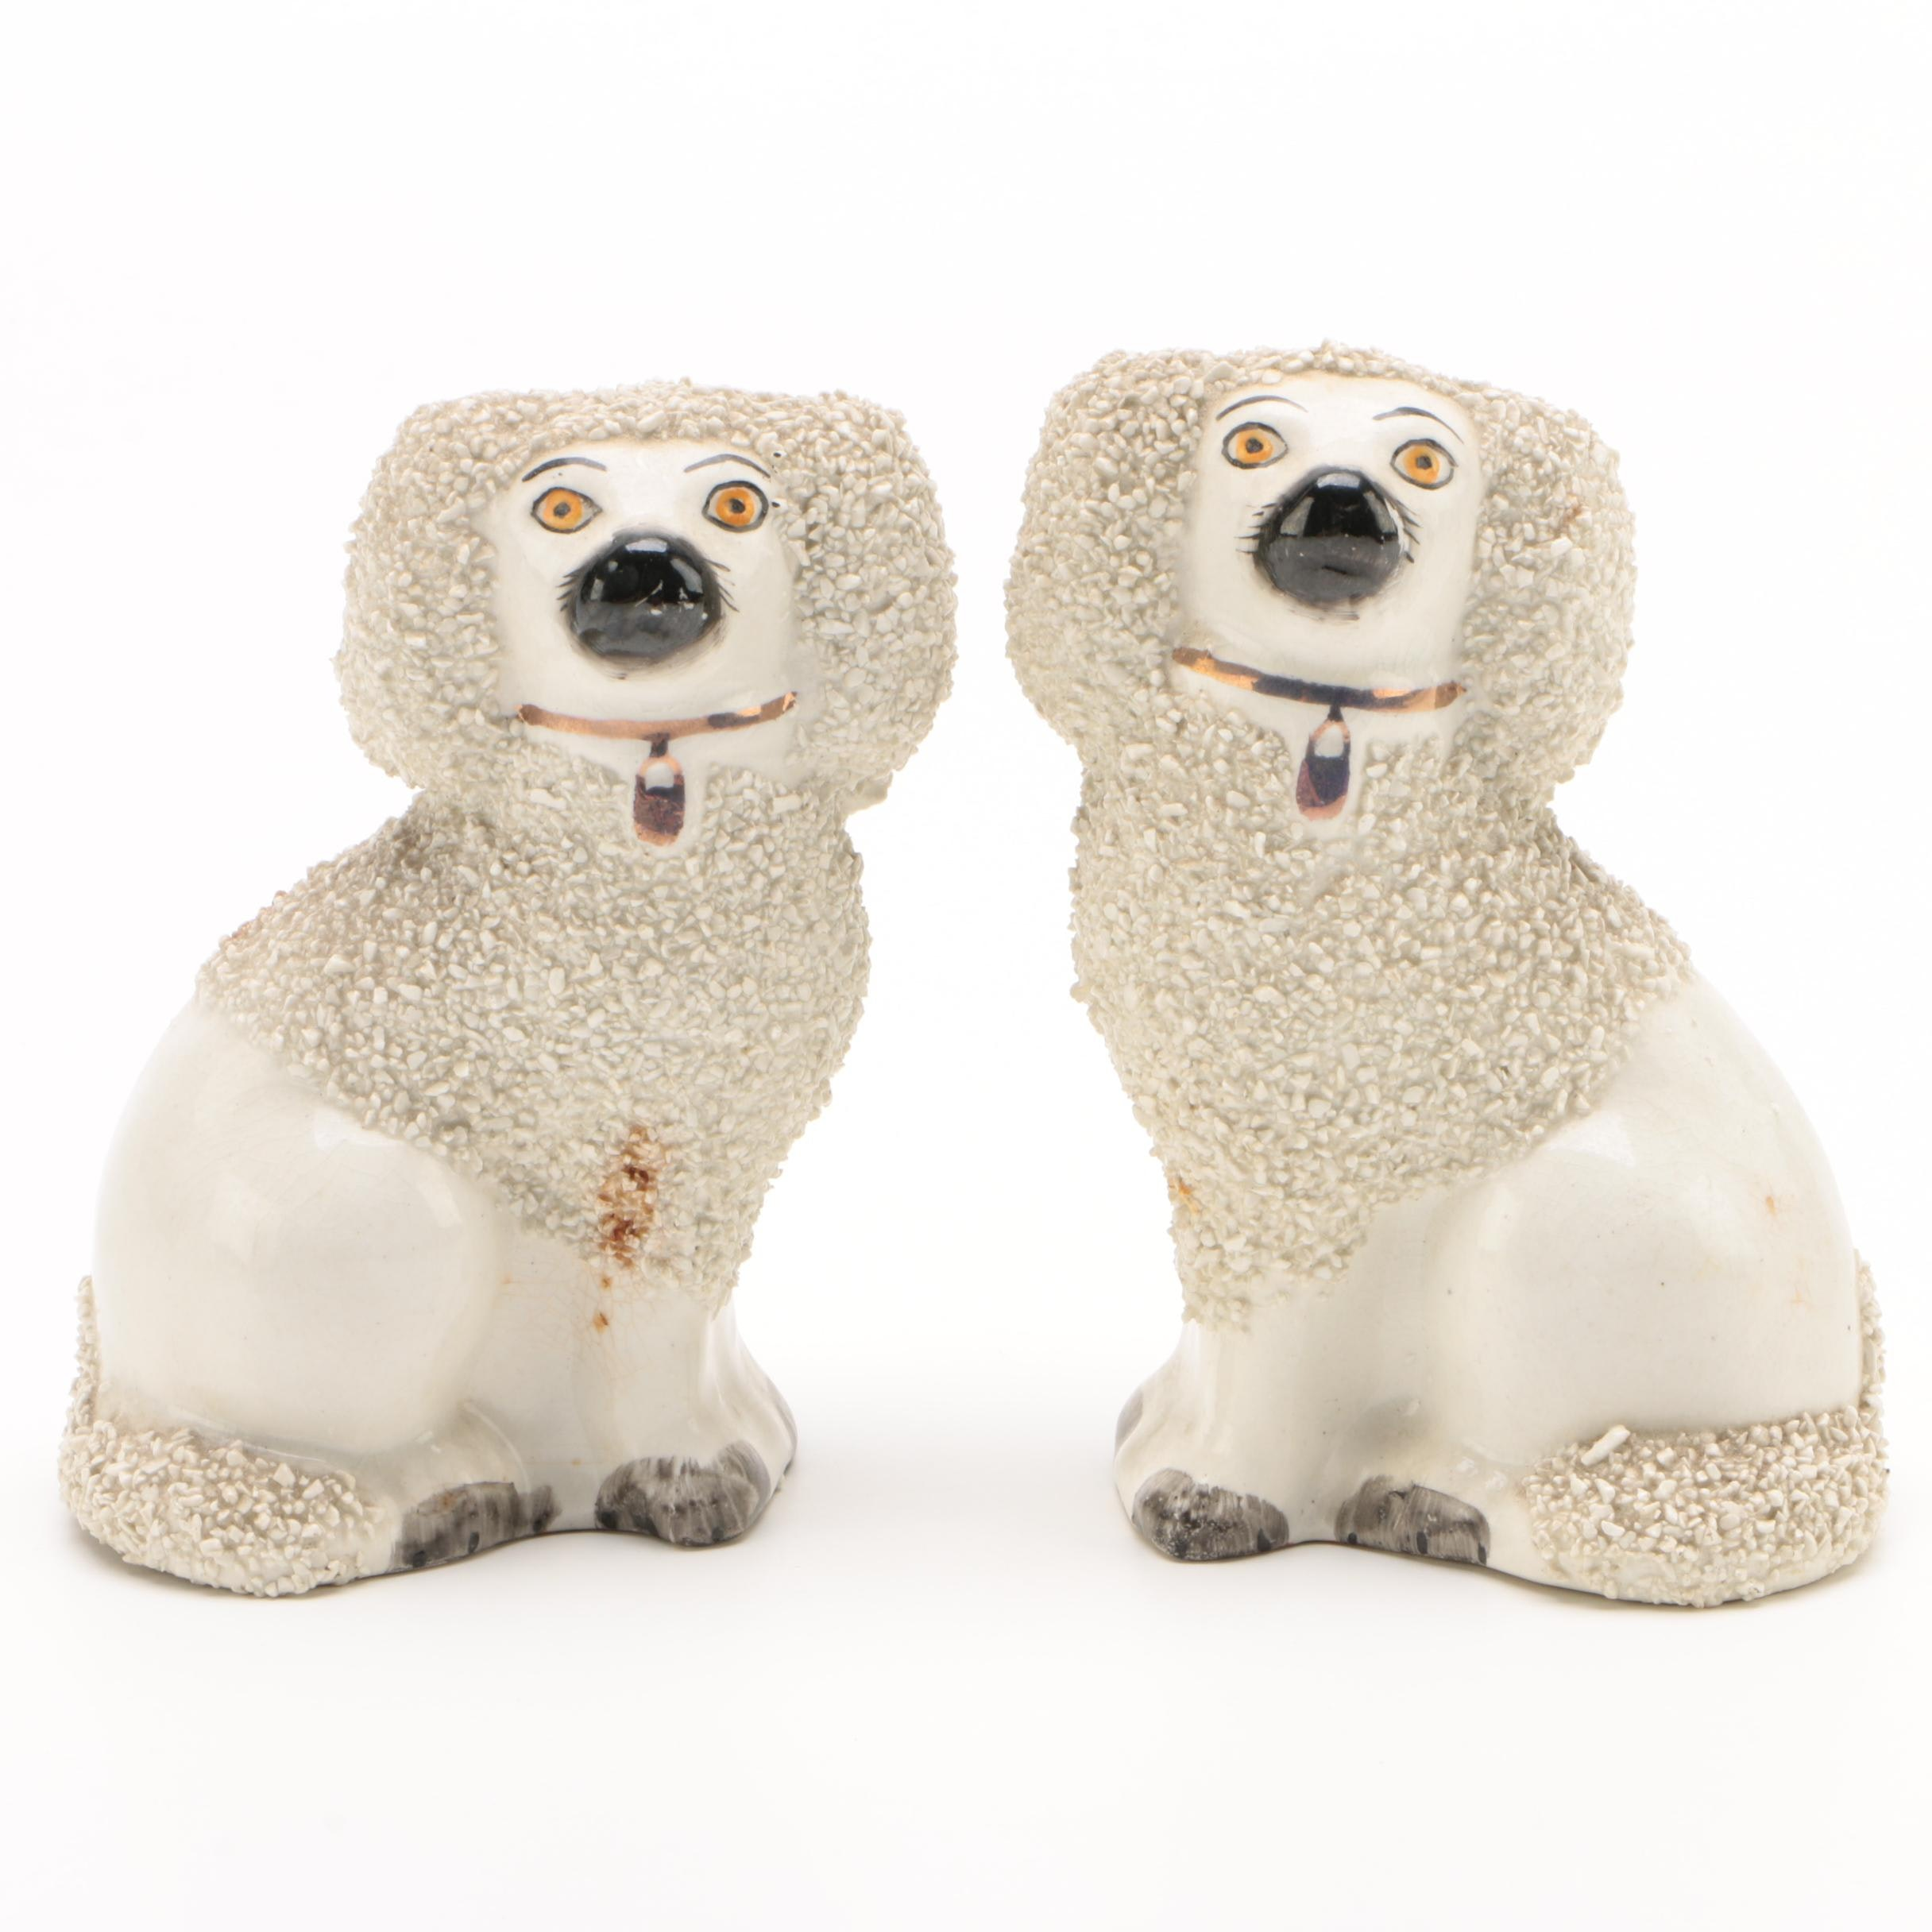 Pair of Staffordshire Ceramic Spaniel Figurines, Early/Mid 20th Century